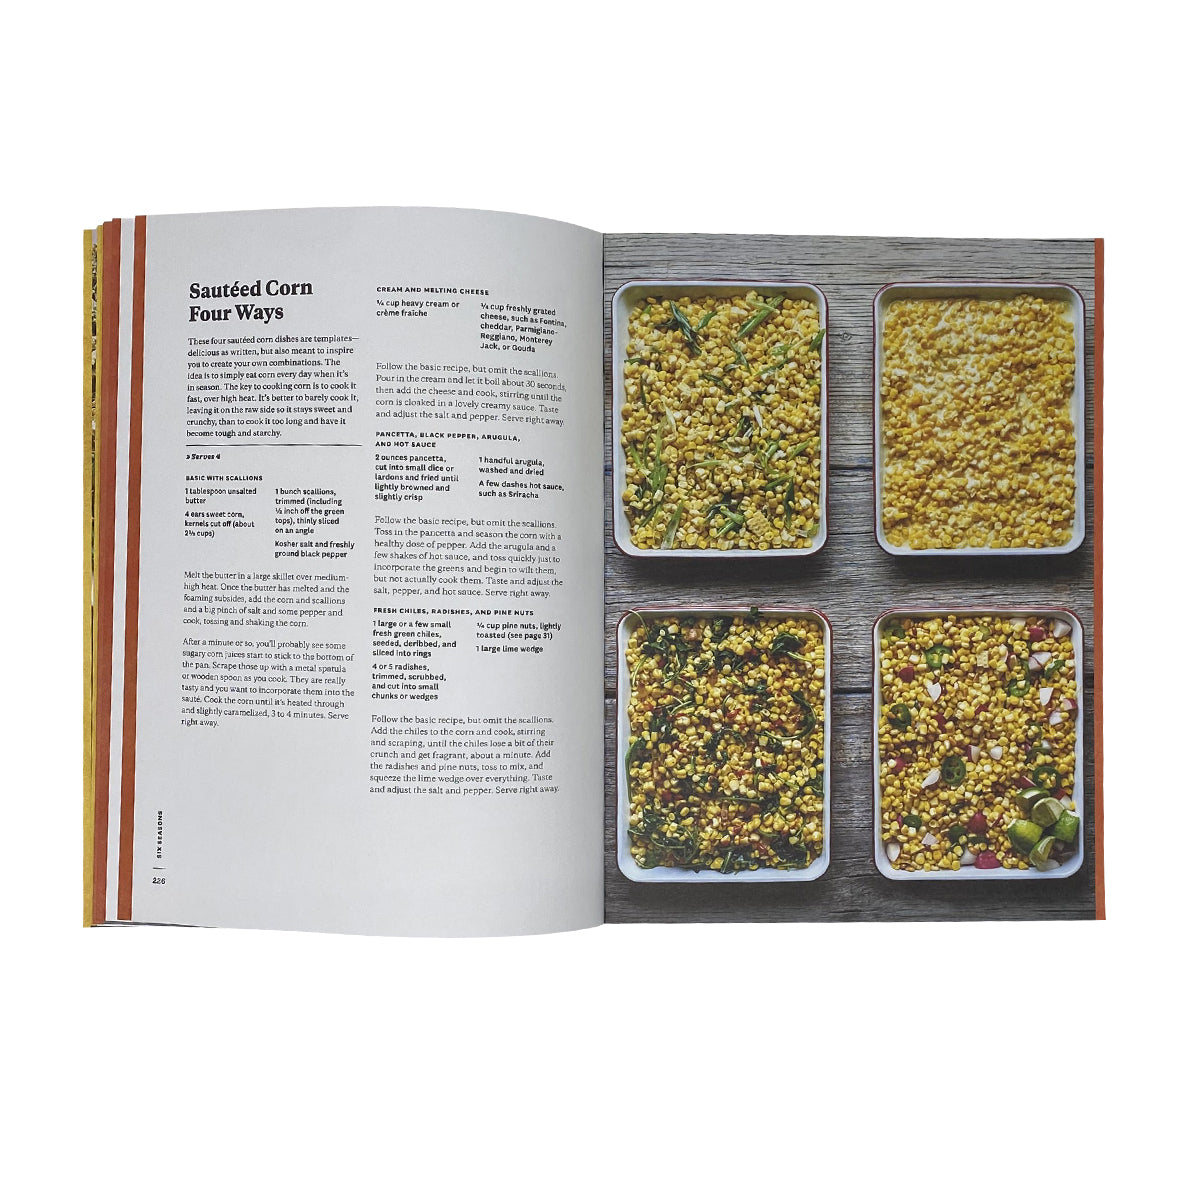 Six Seasons: A New Way With Vegetables - Book